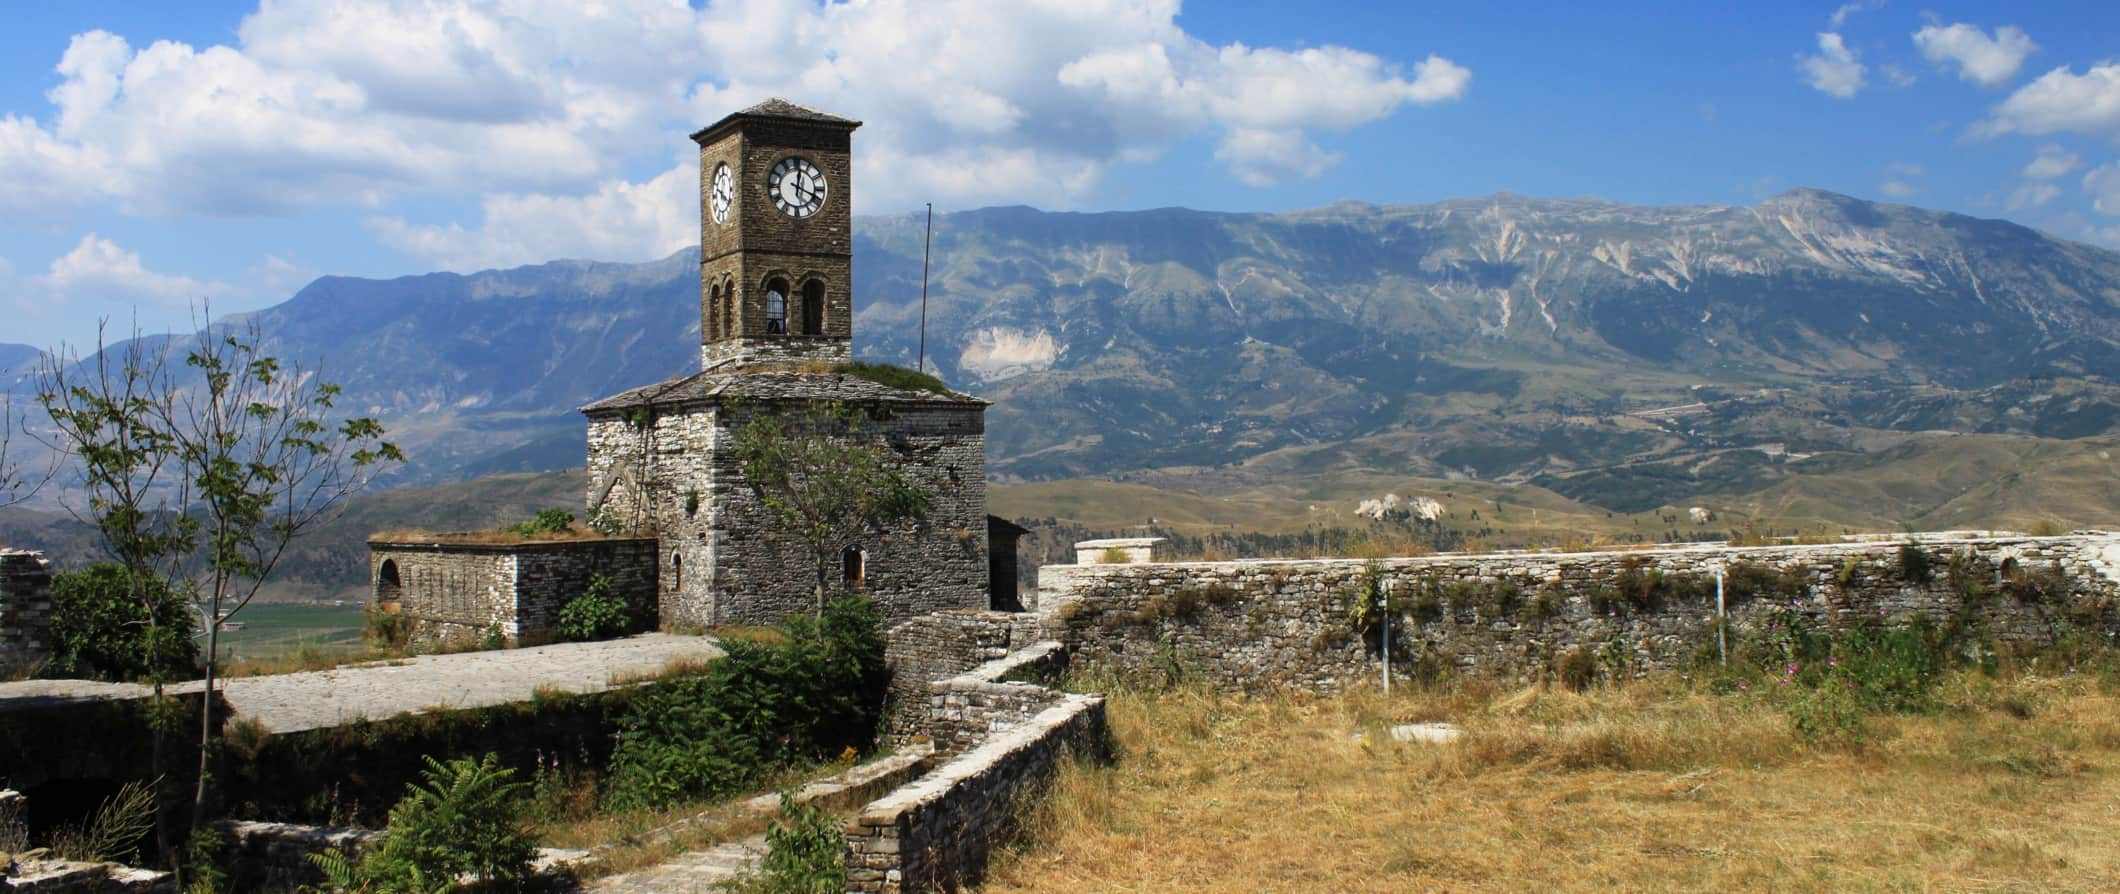 An old stone tower and stone wall in Albania